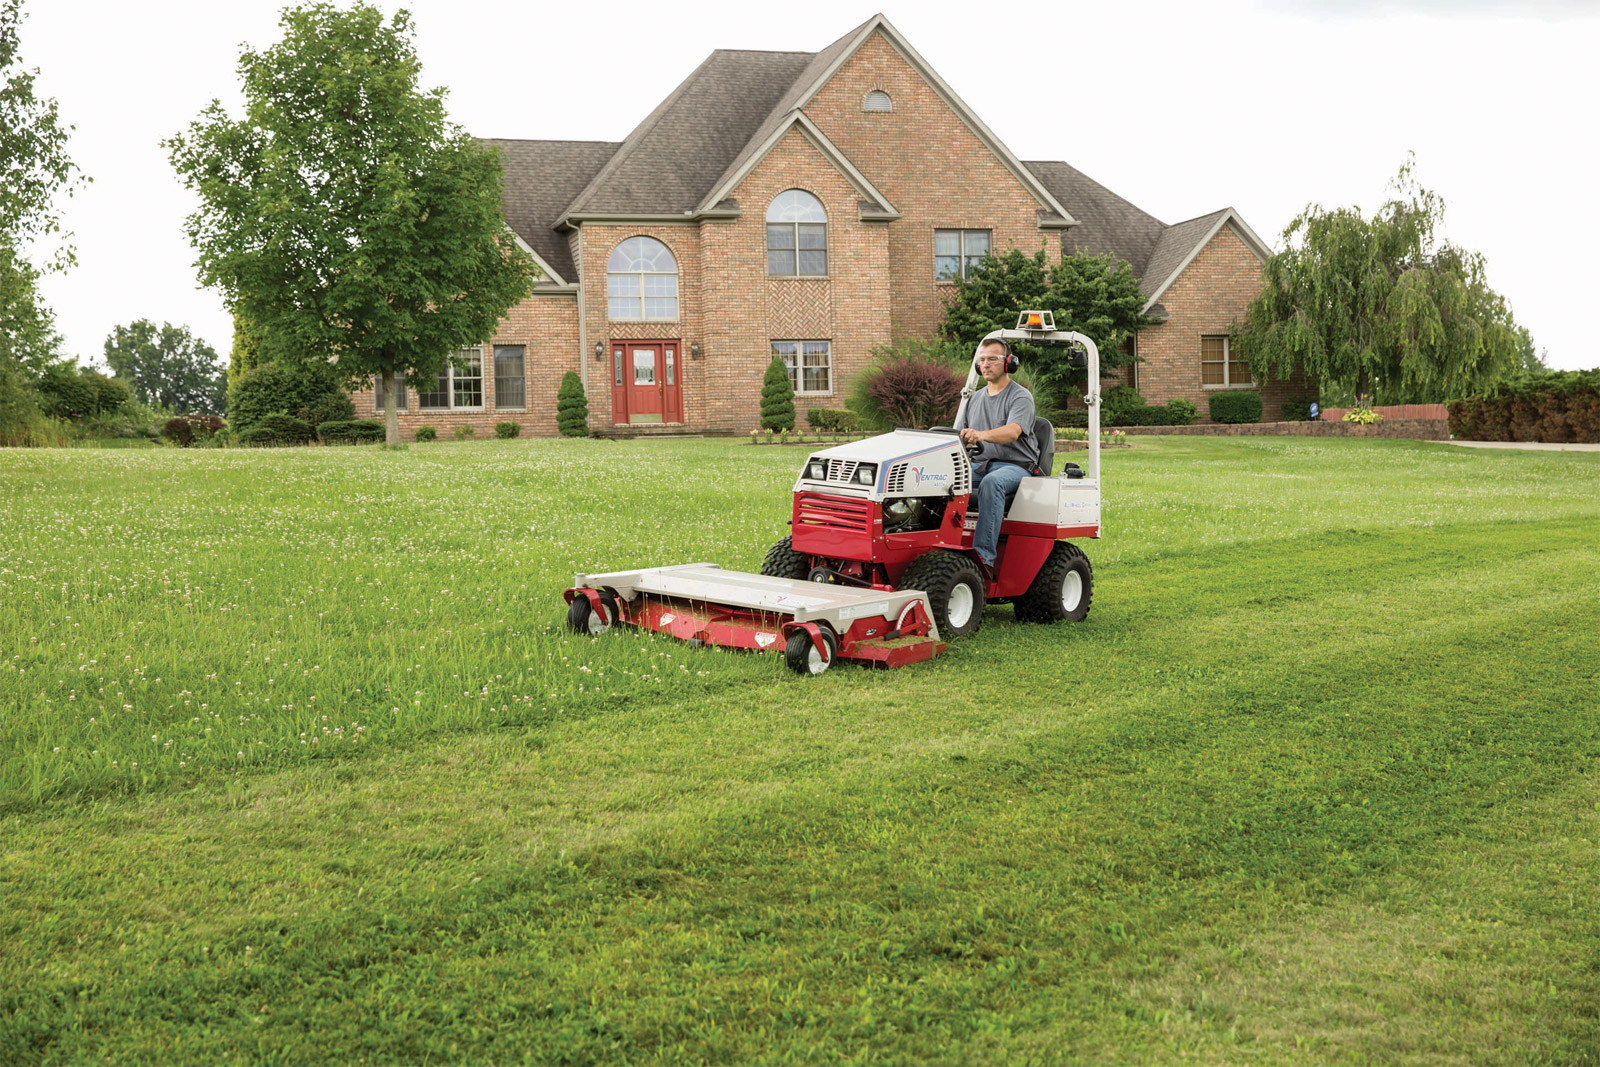 Large manicured lawn with HM722 attachment on Ventrac 4500 tractor